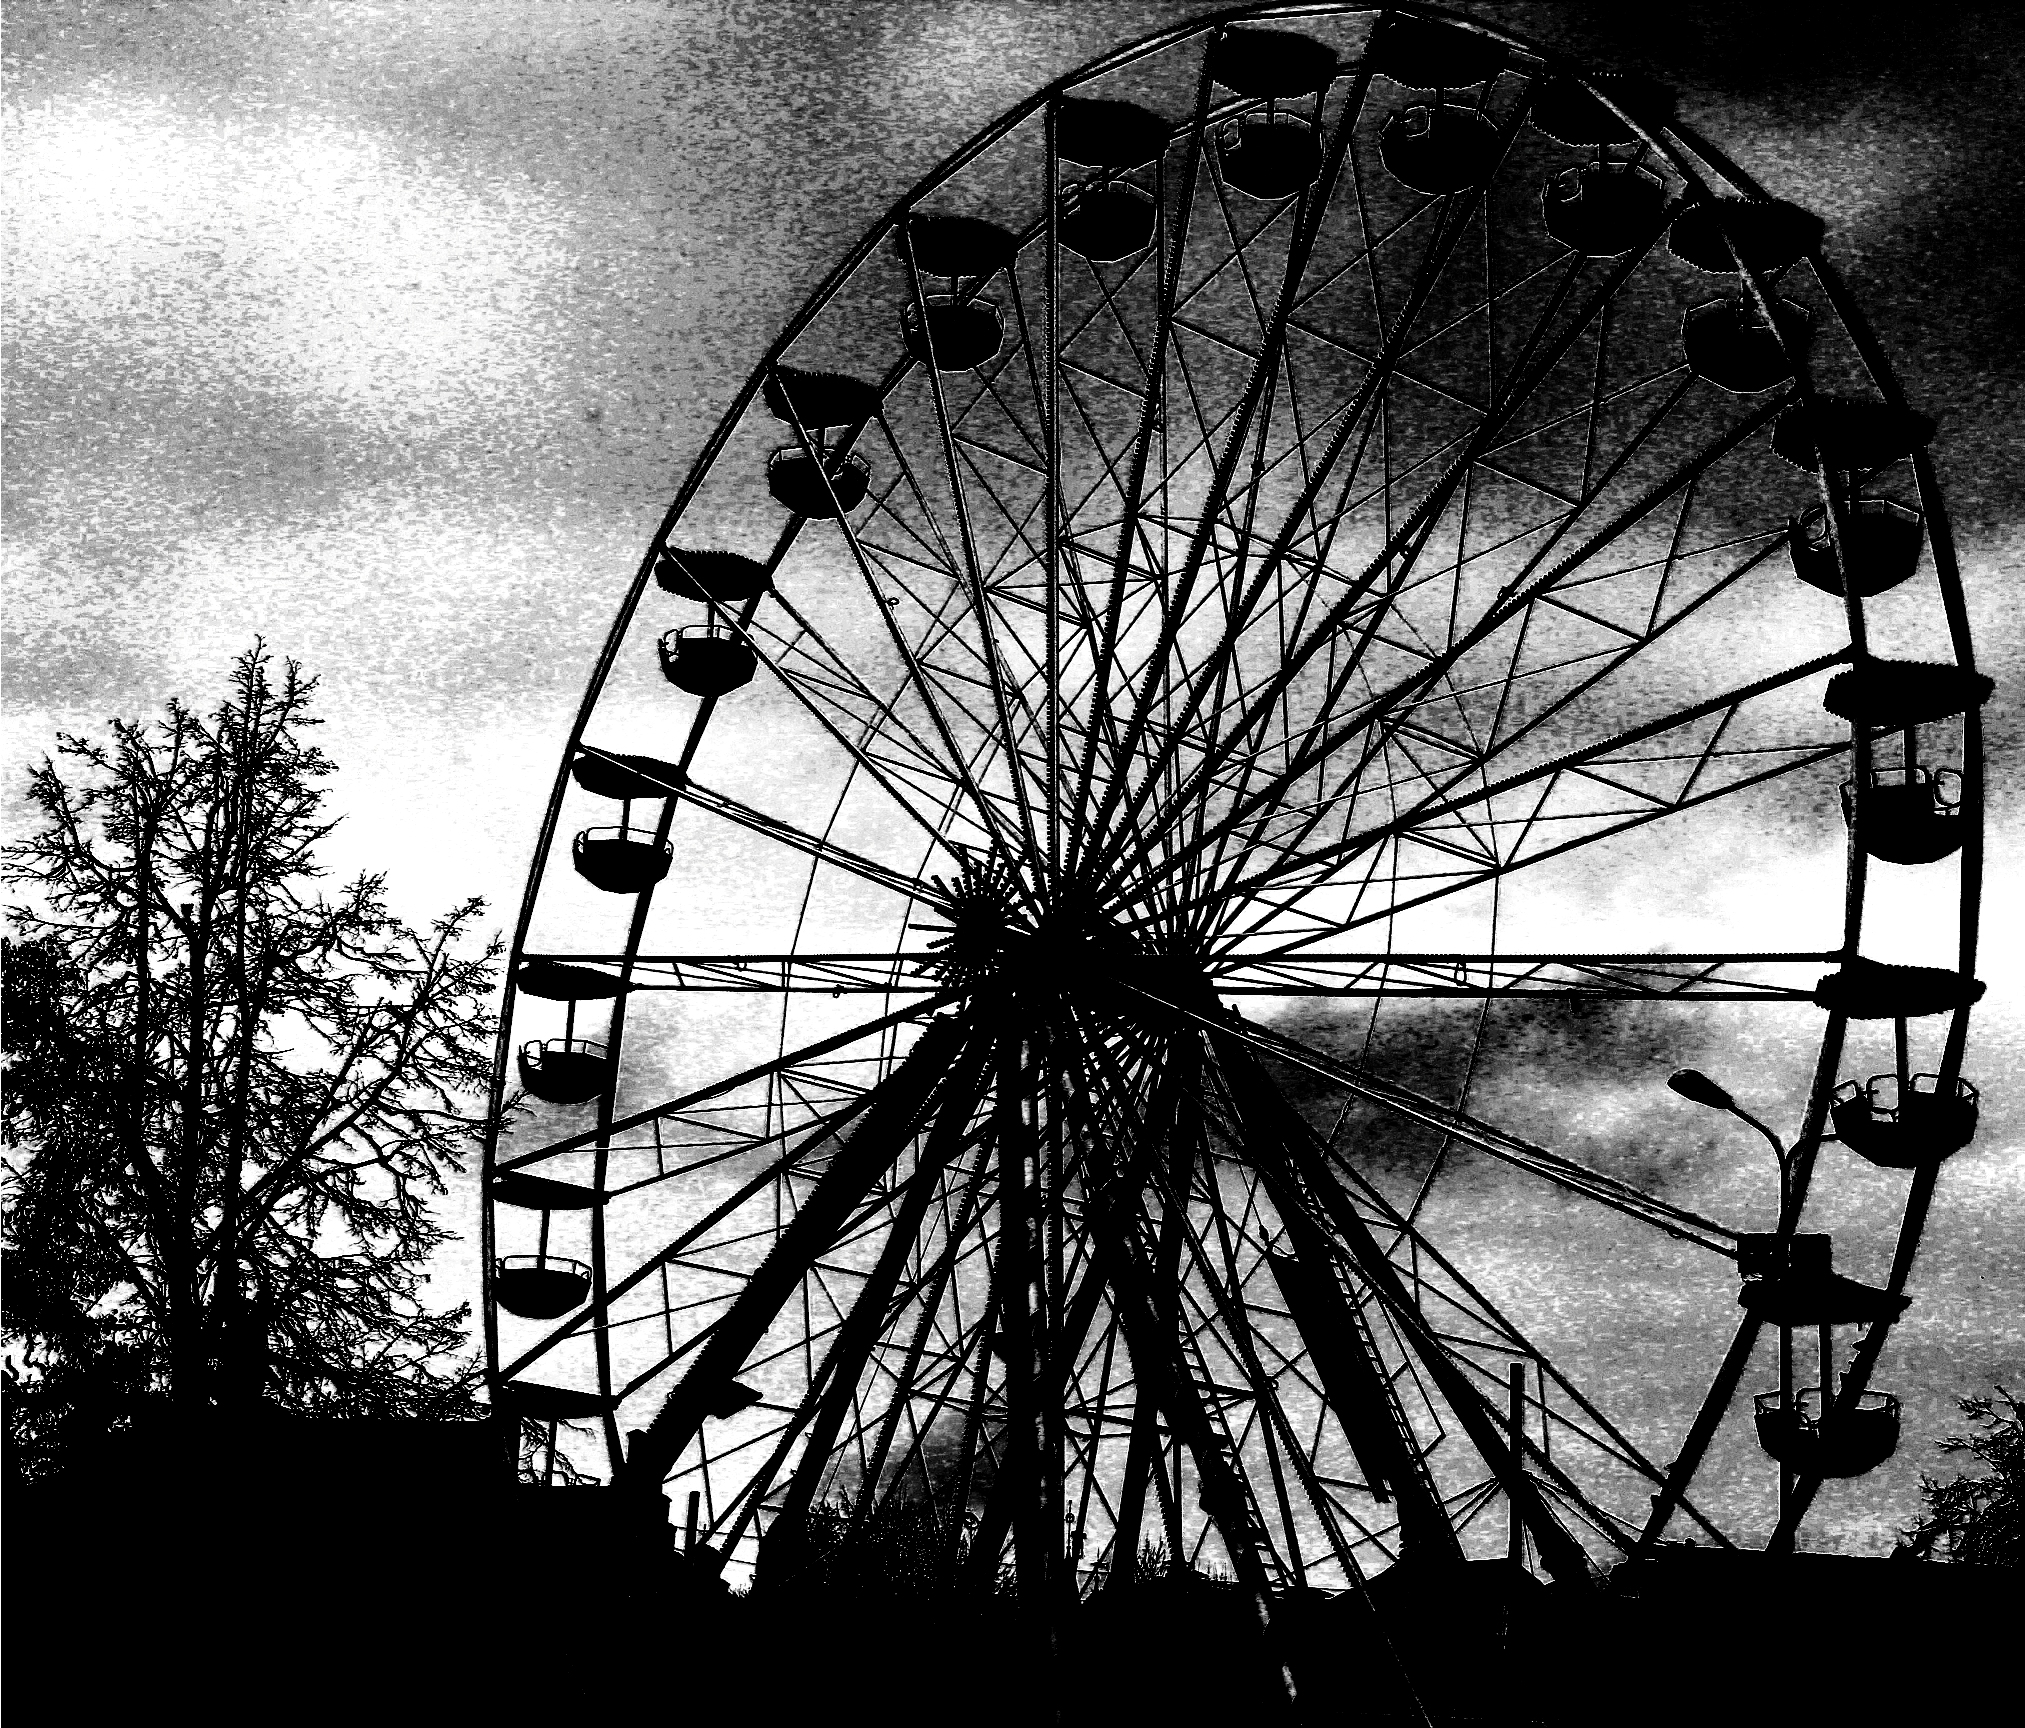 Scary Ferris Wheel by bErKandD on DeviantArt